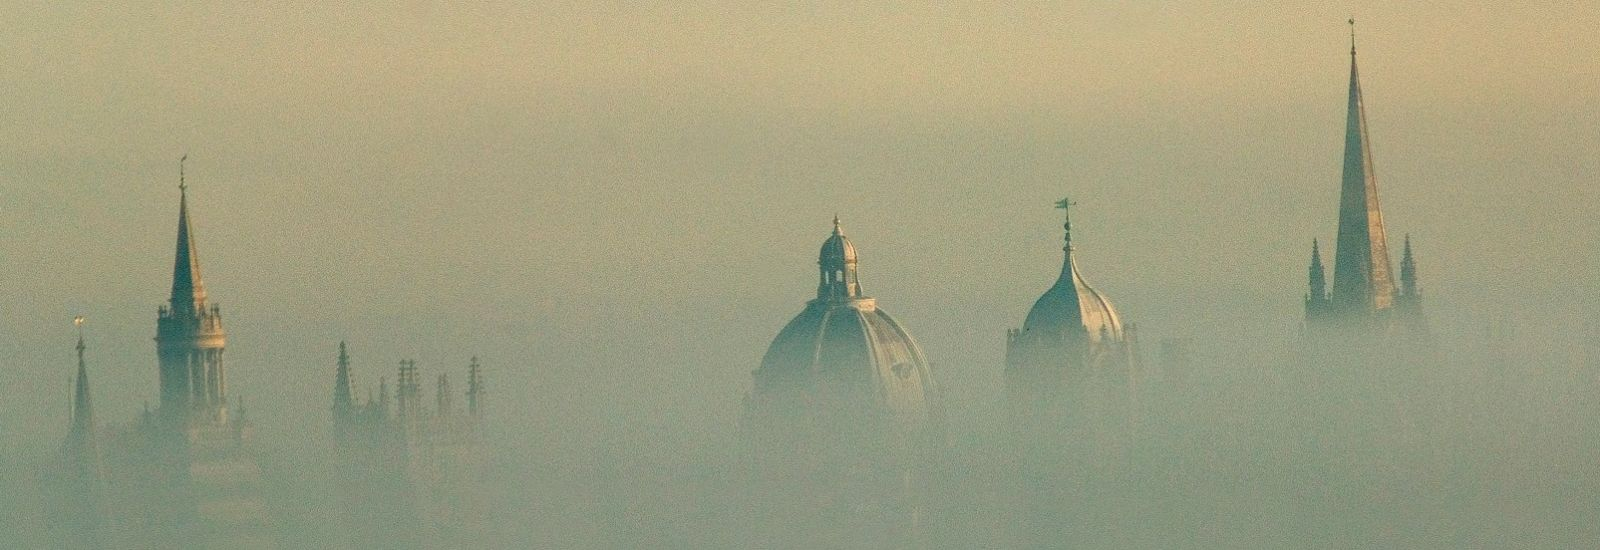 Early morning mist over the rooftops of iconic Oxford